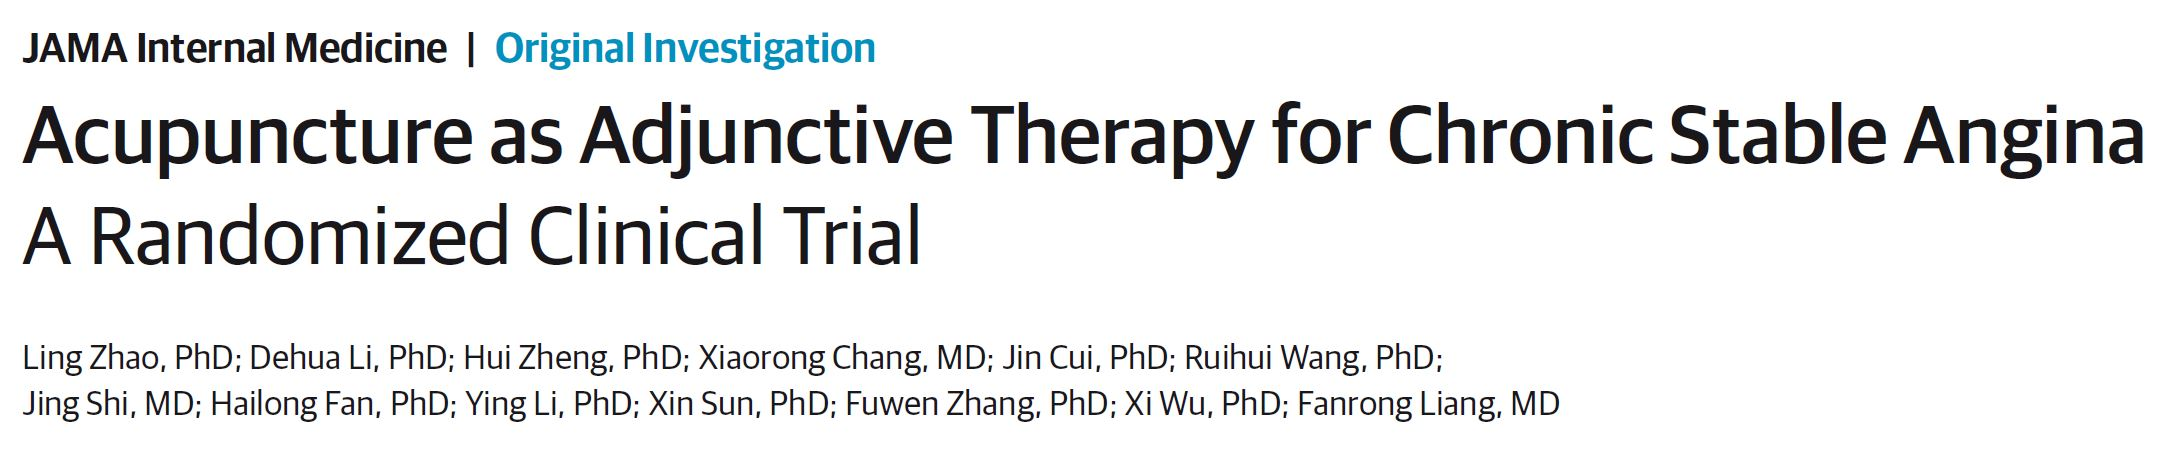 Acupuncture as Adjunctive Therapy for Chronic Stable Angina